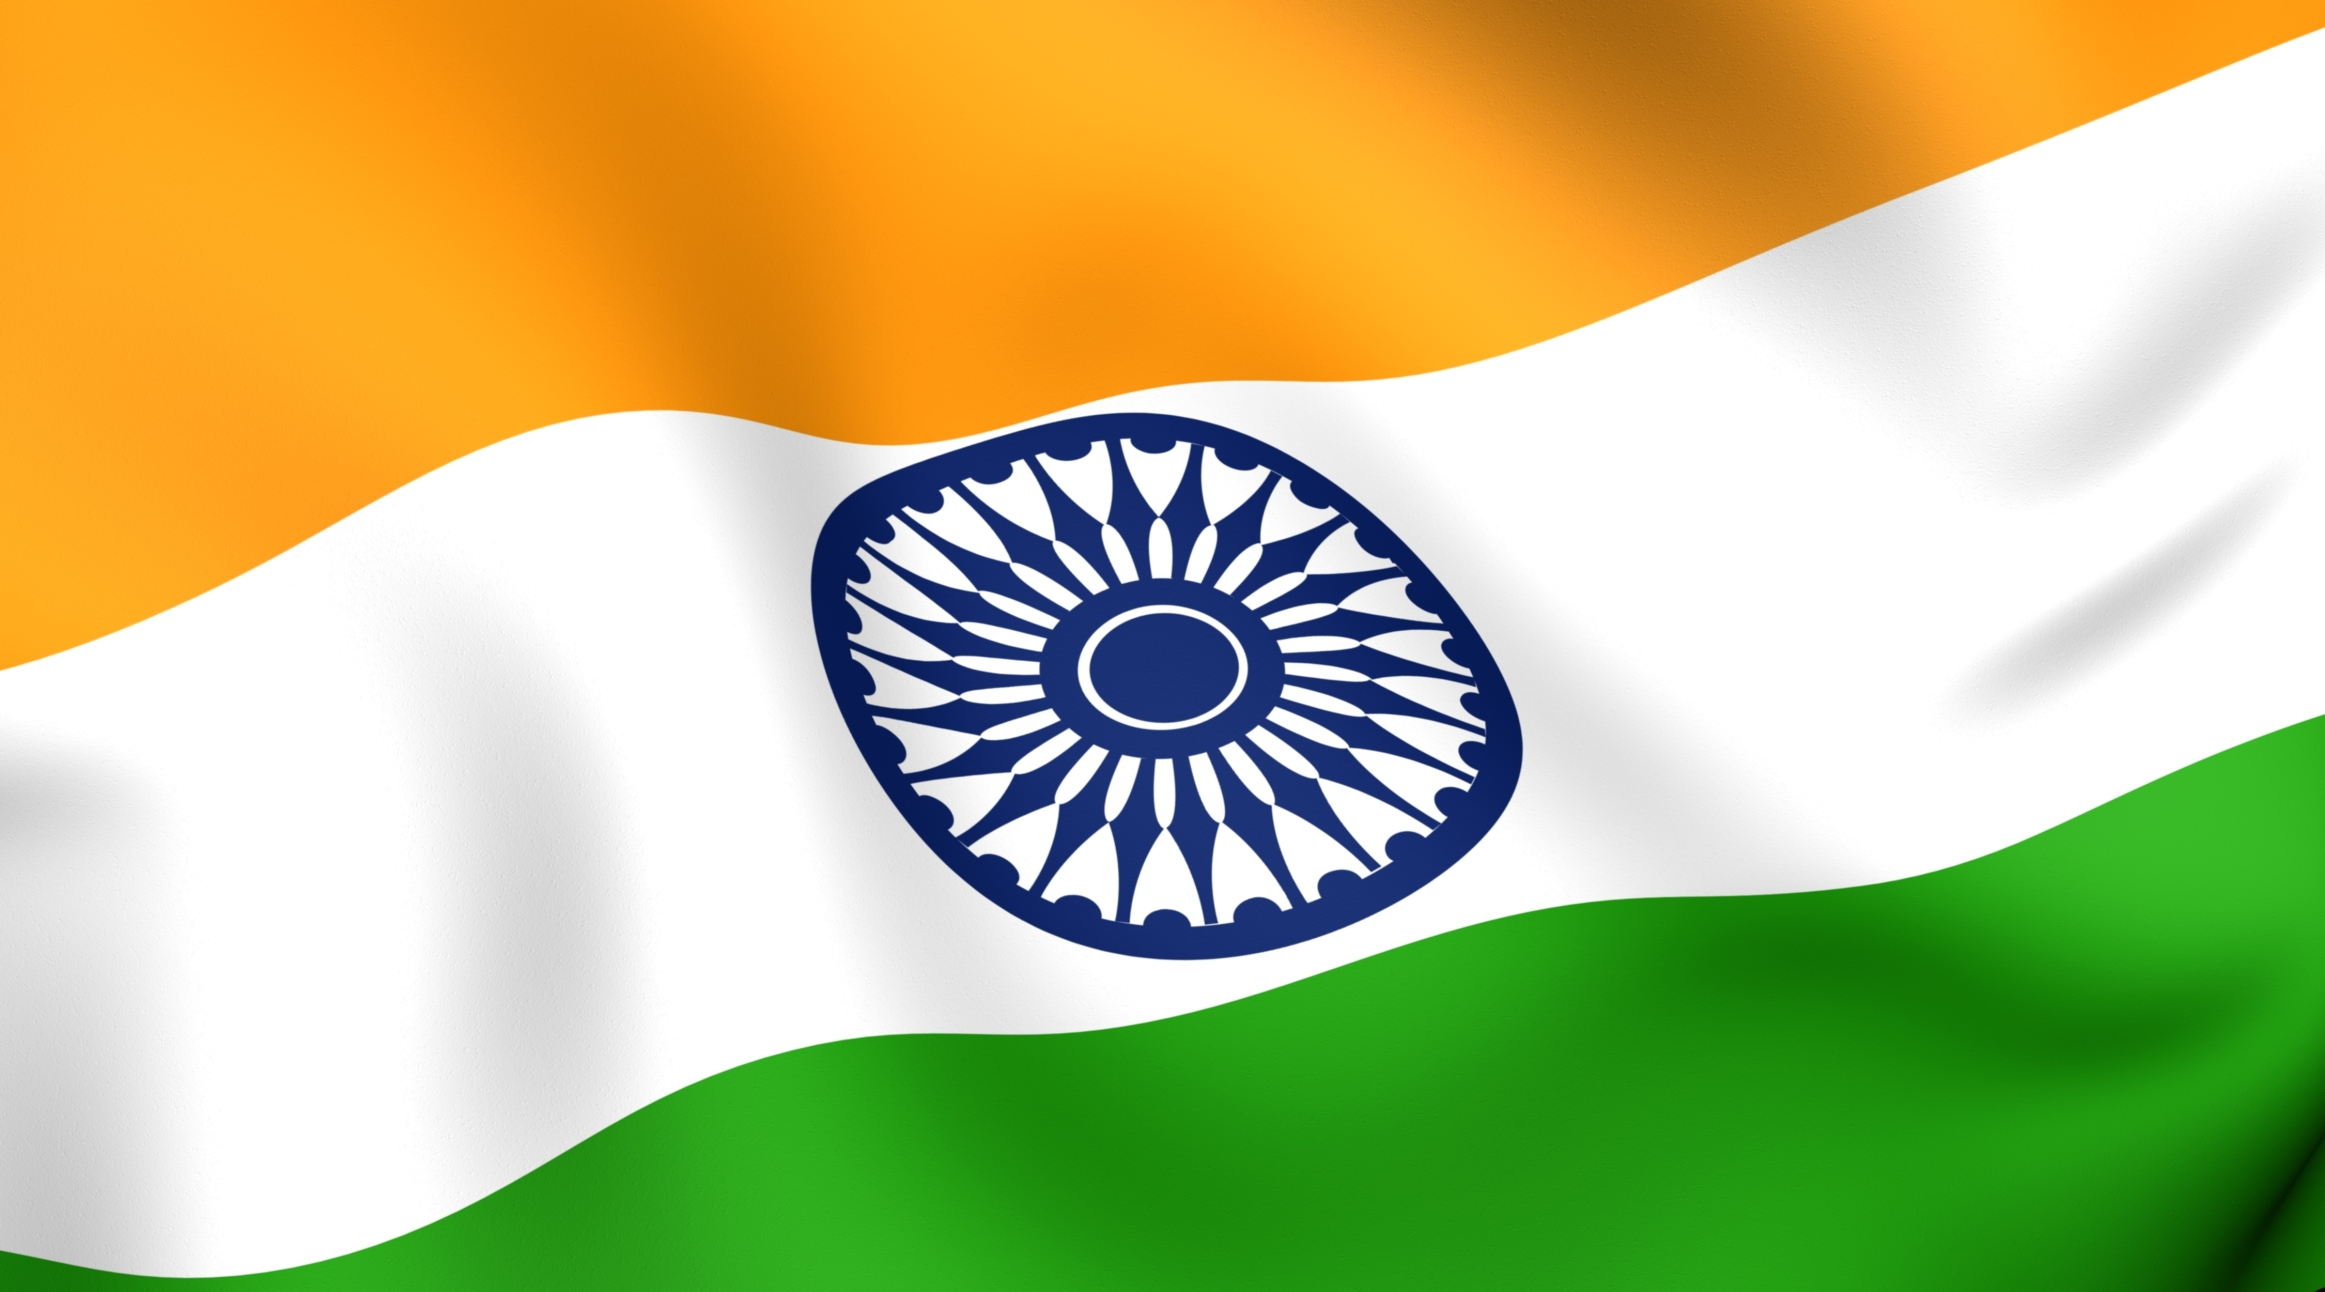 indian flag wallpapers & hd images 2018 [free download]